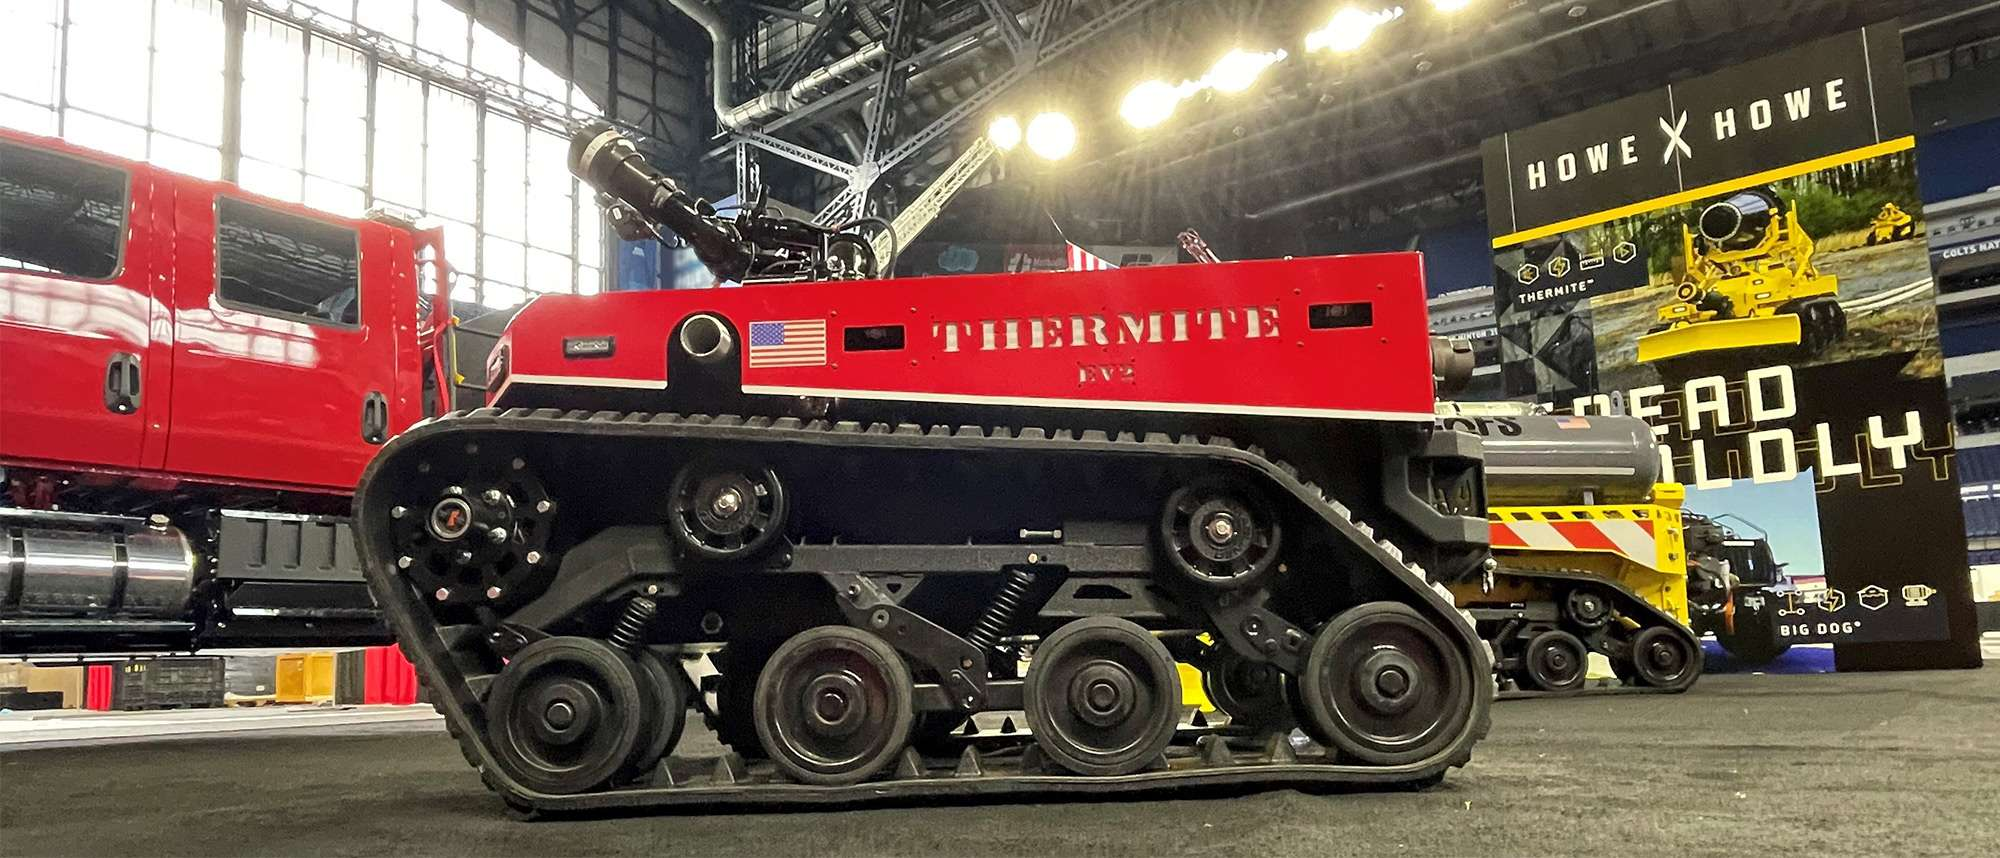 Thermite EV2 at FDIC Tradeshow with Howe & Howe banner and Thermite RS1 in the background